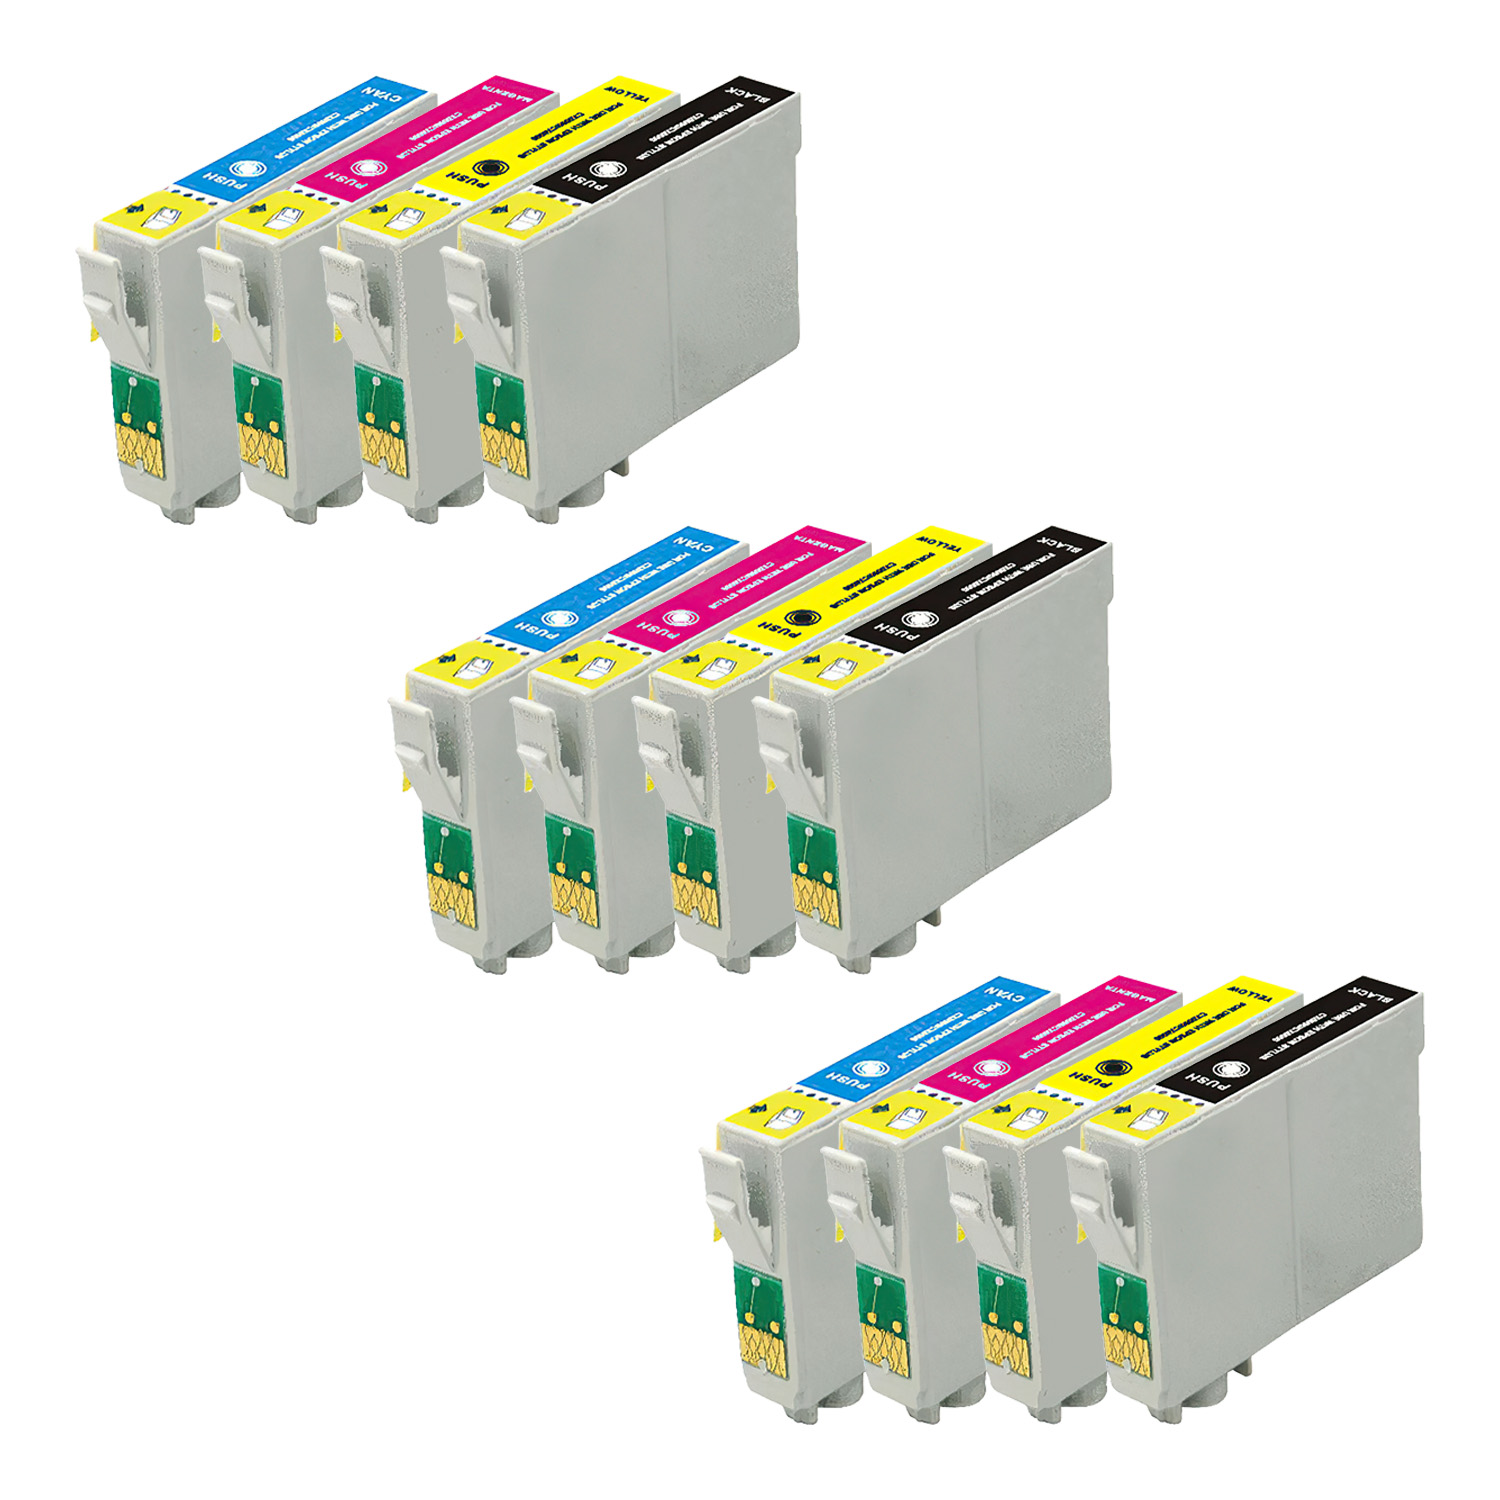 Remanufactured Epson 68-97 Inkjet Extra High Capacity Pack - 12 Cartridges